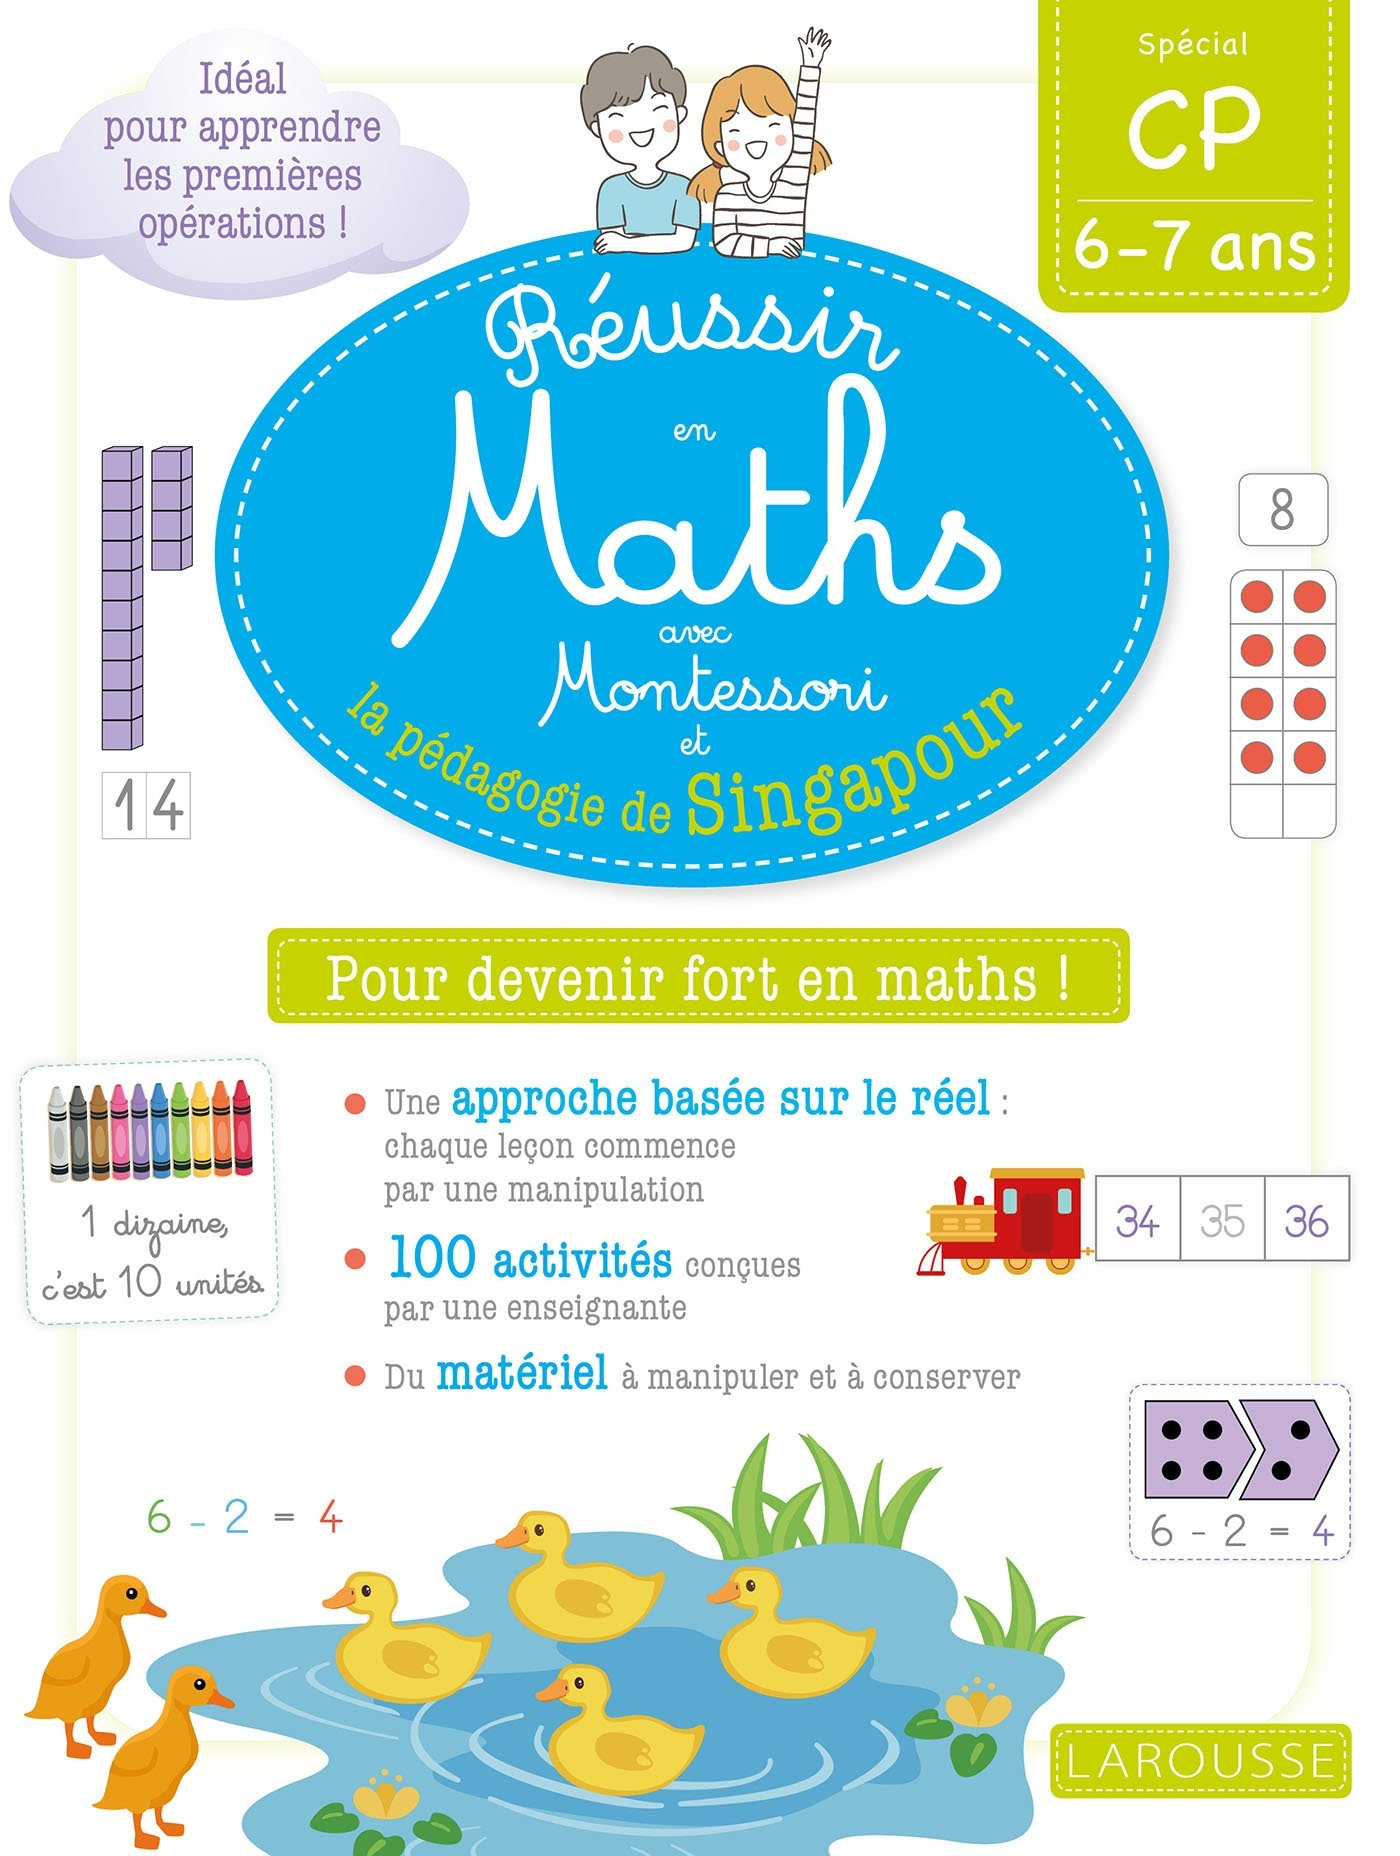 Réussir en maths avec Montessori et la pédagogie de Singapour CP